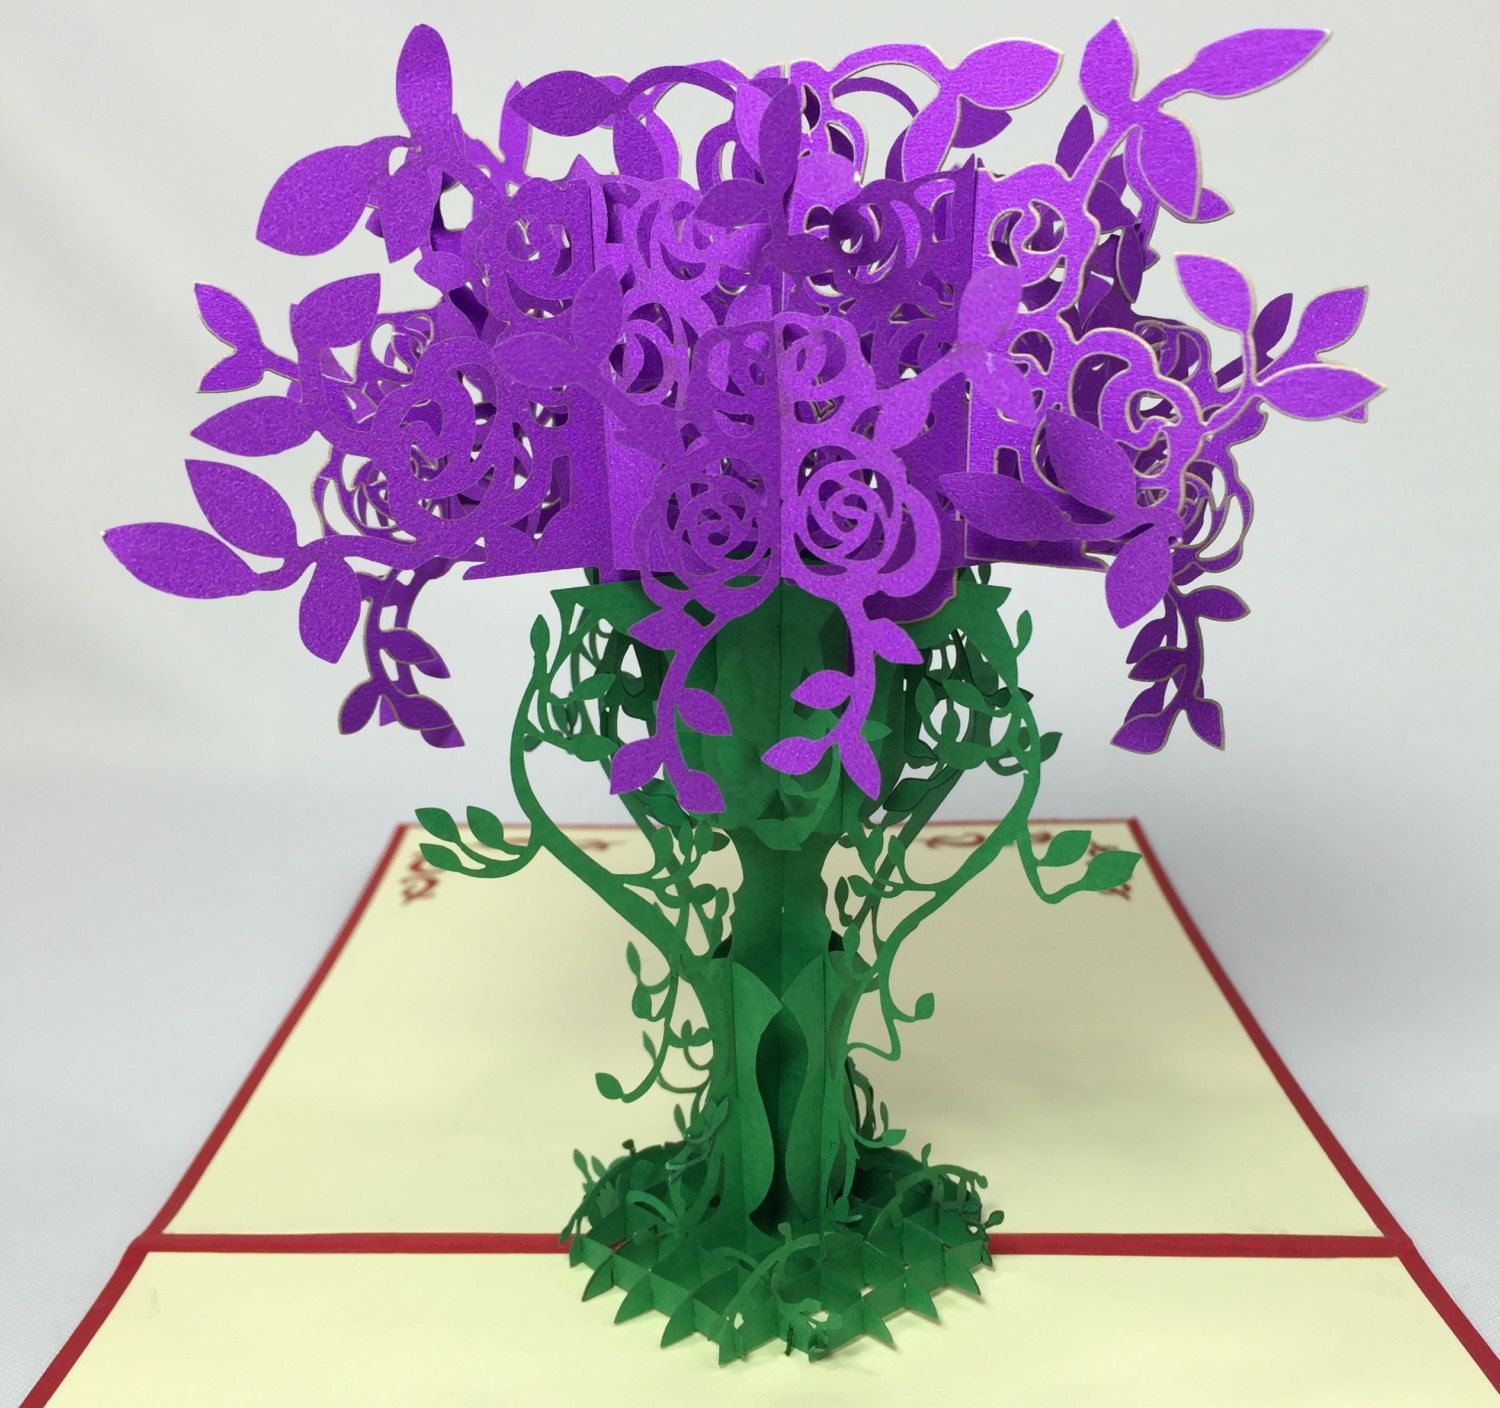 3d roses flower bouquets pop up card 3d handmade card pop up roses flower bouquets pop up card pop up flower card mothers day card thank you card birthday card get well card izmirmasajfo Images